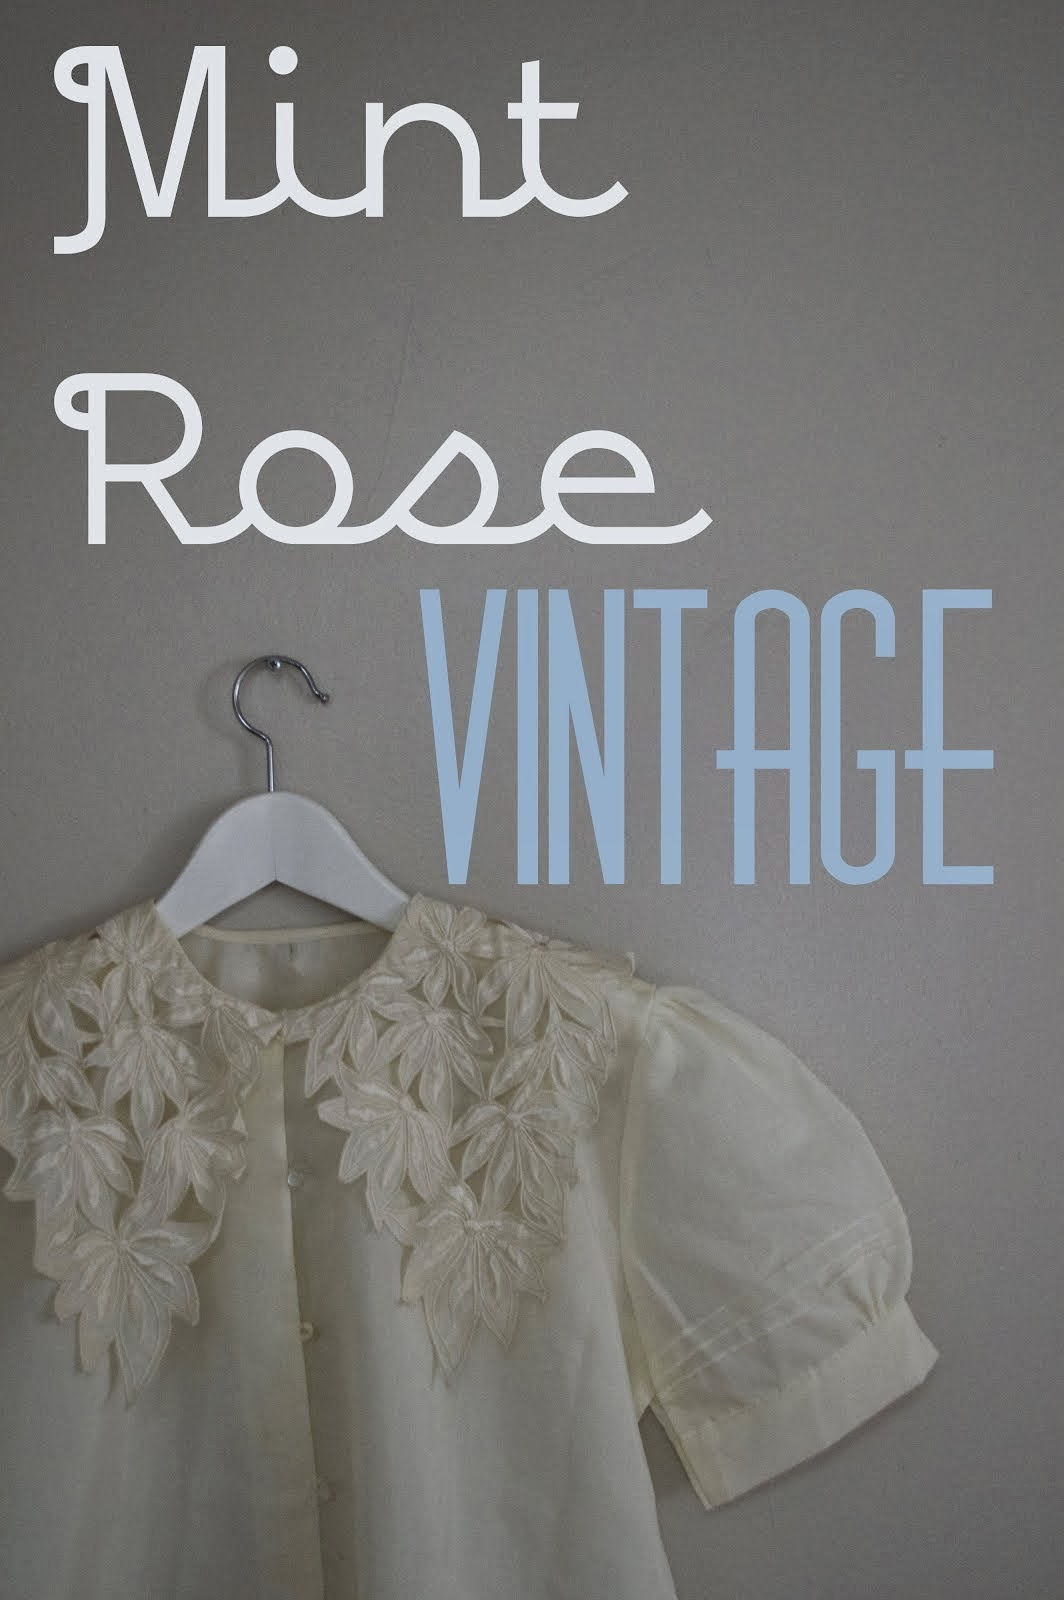 Check Out My Vintage Shop!